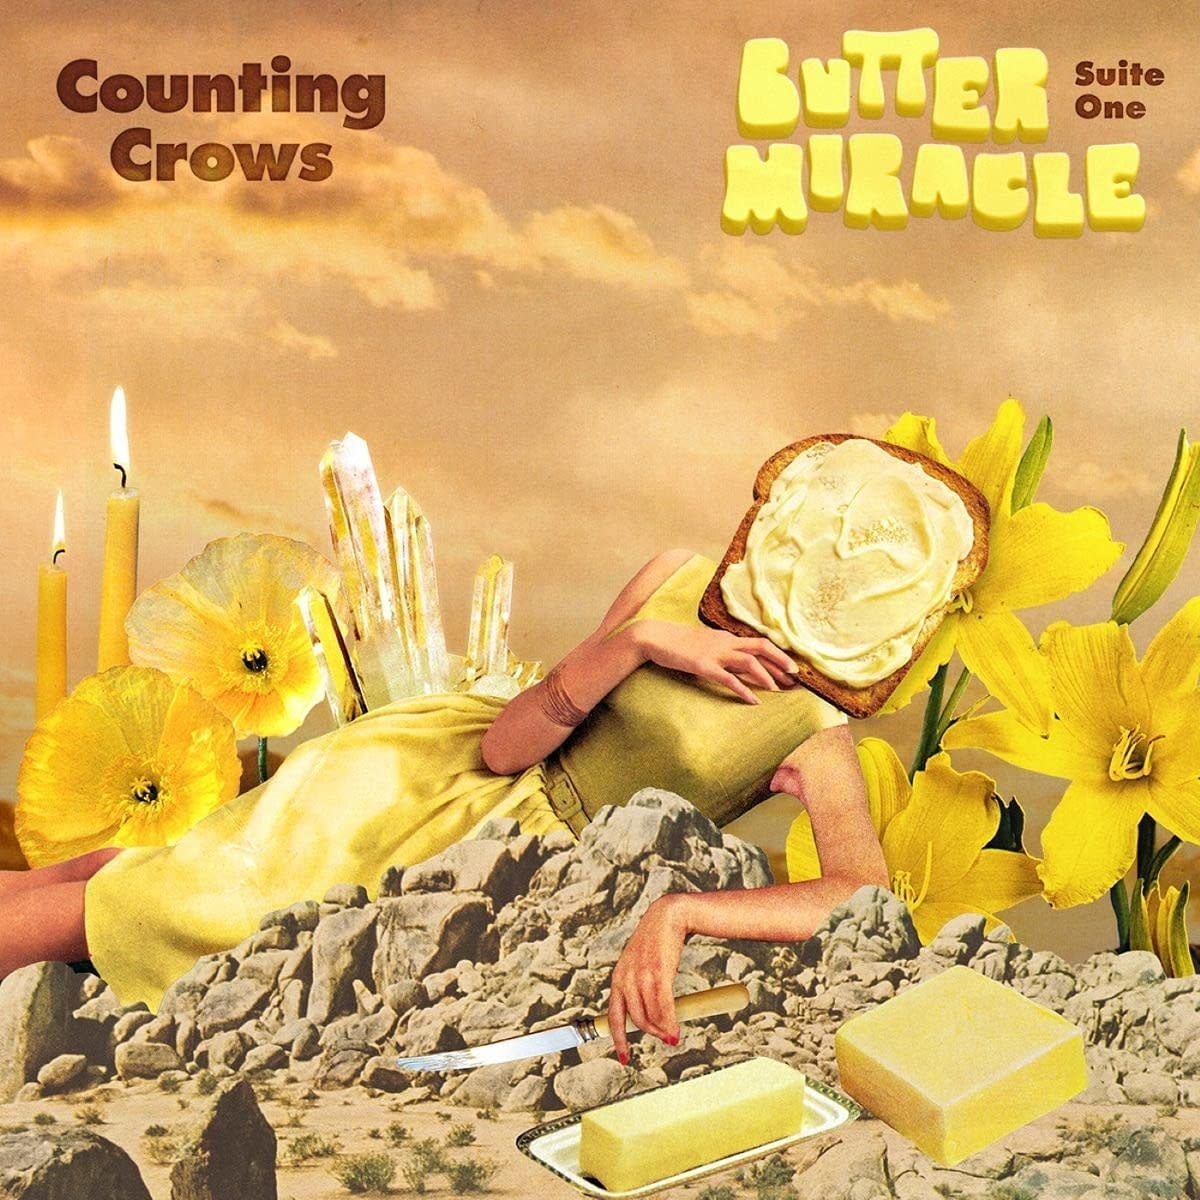 Counting Crows – Butter Miracle: Suite One